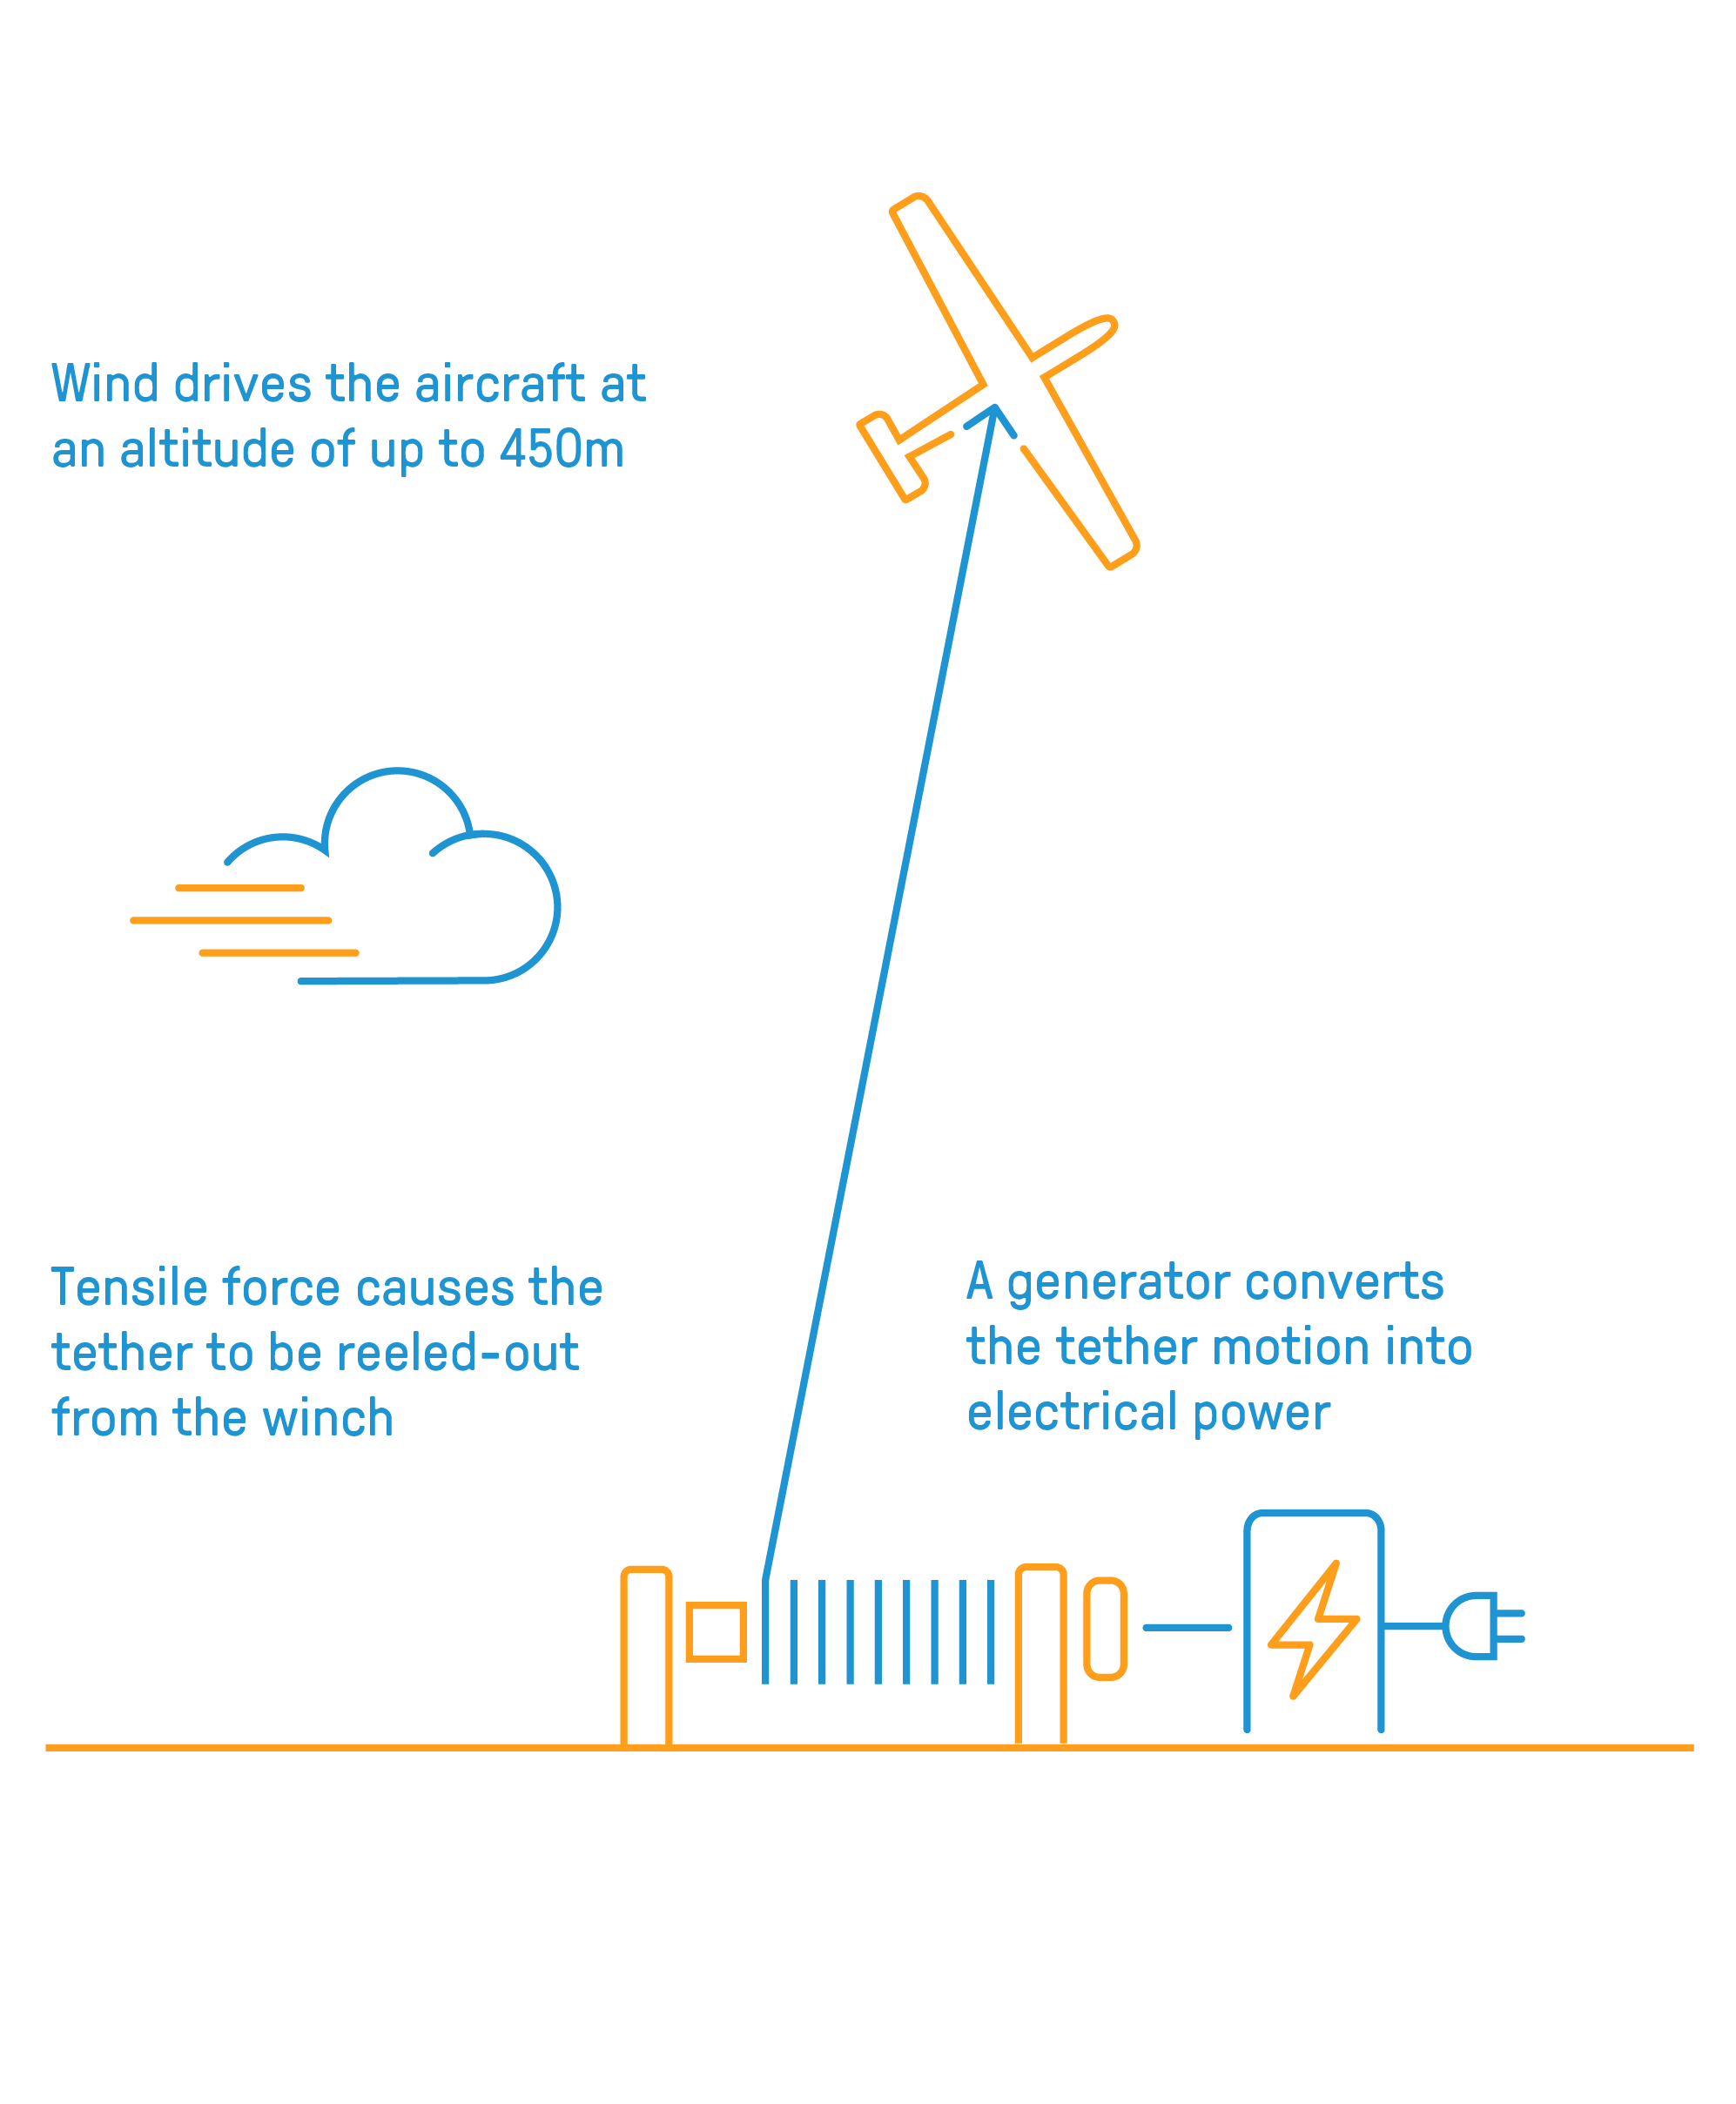 Ampyx Power And Nlr Join Forces To Develop Alternative Wind Energy Diagram The Awes Being Developed By Is A Compact System That Uses Strong Winds Prevailing At Altitudes Above 200 Metres One Essential Component Of